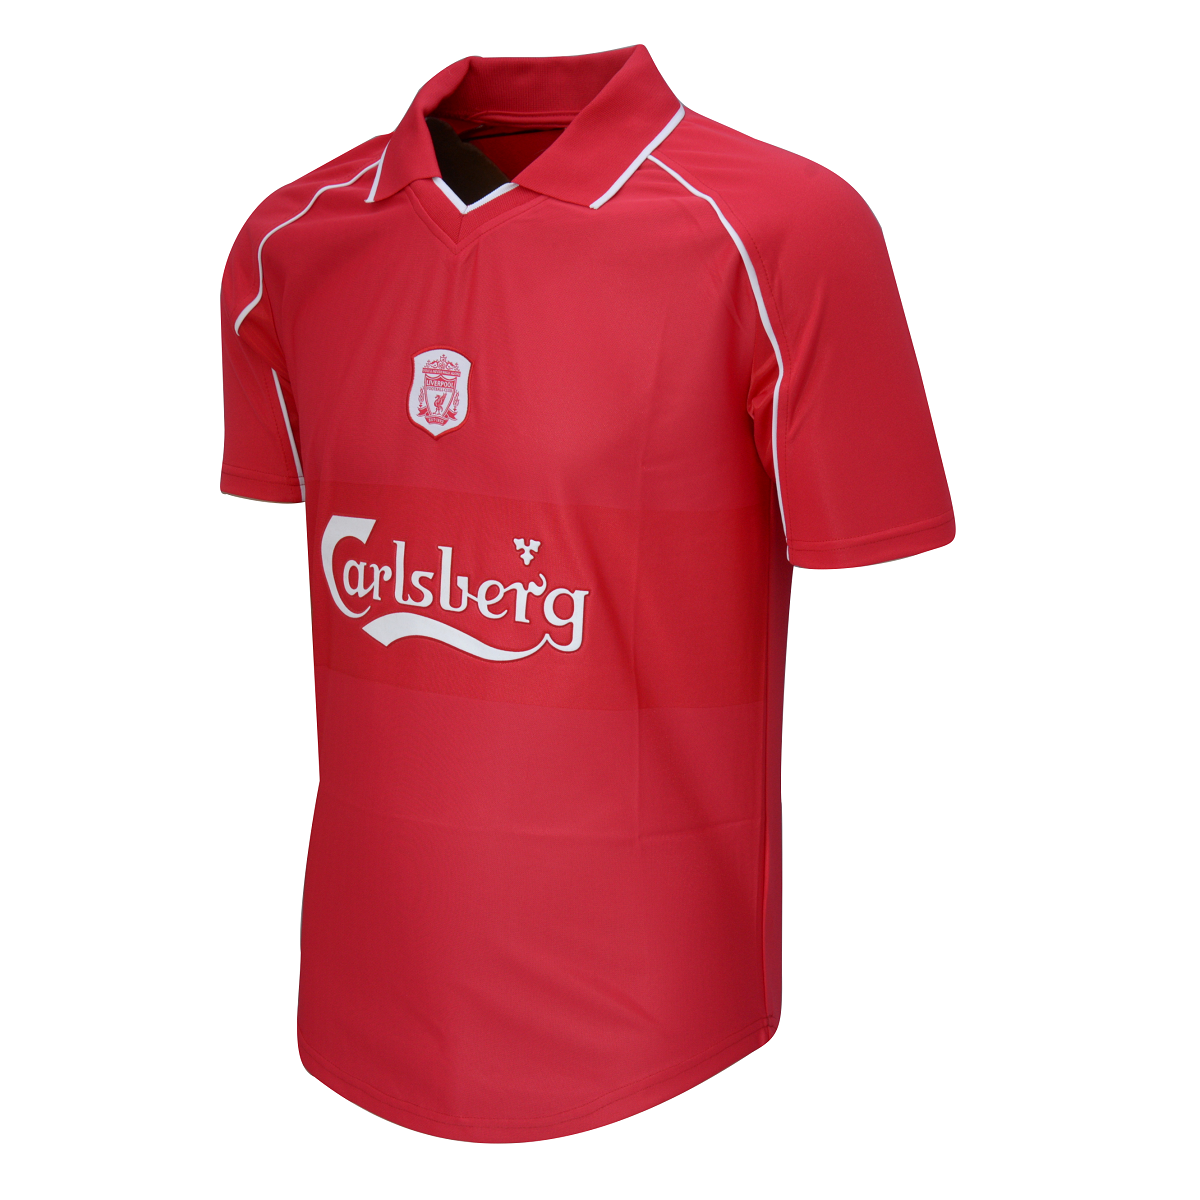 liverpool-2000-retro-shirt